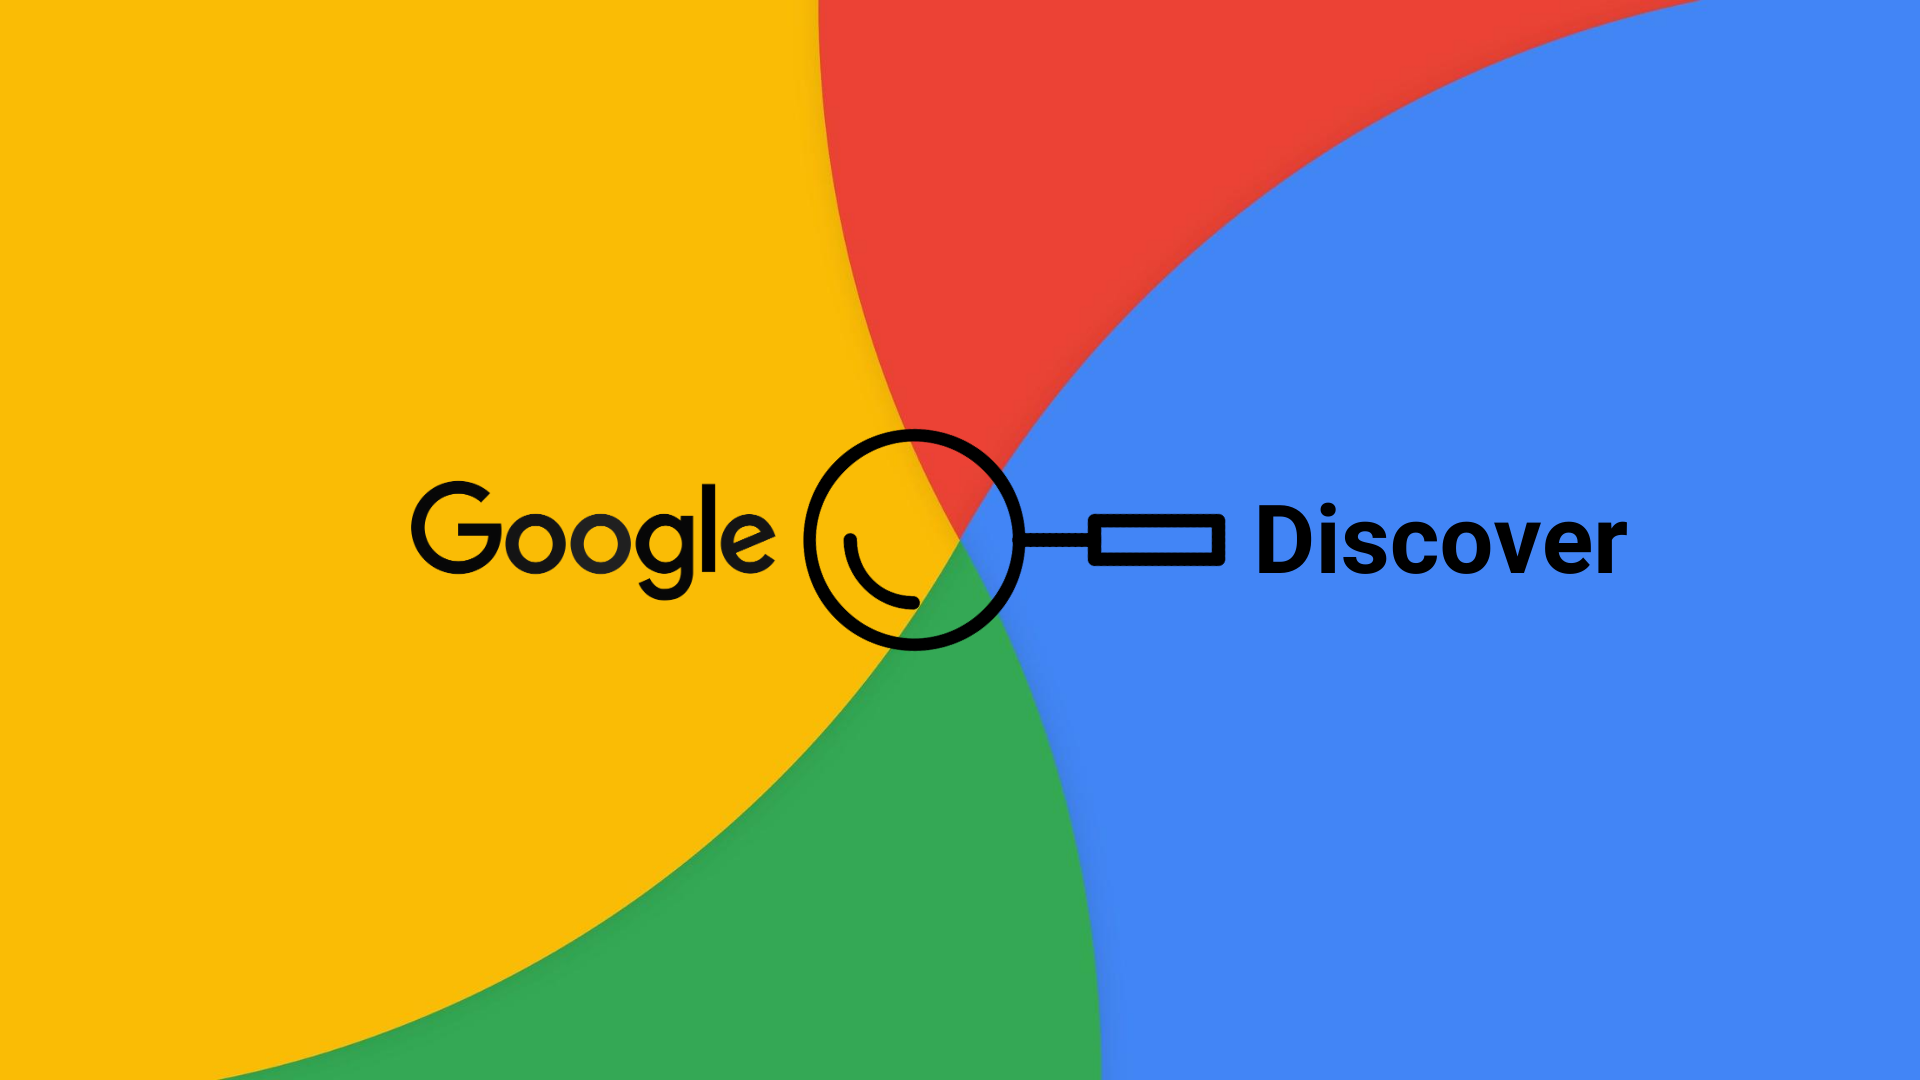 What is Google Discover?